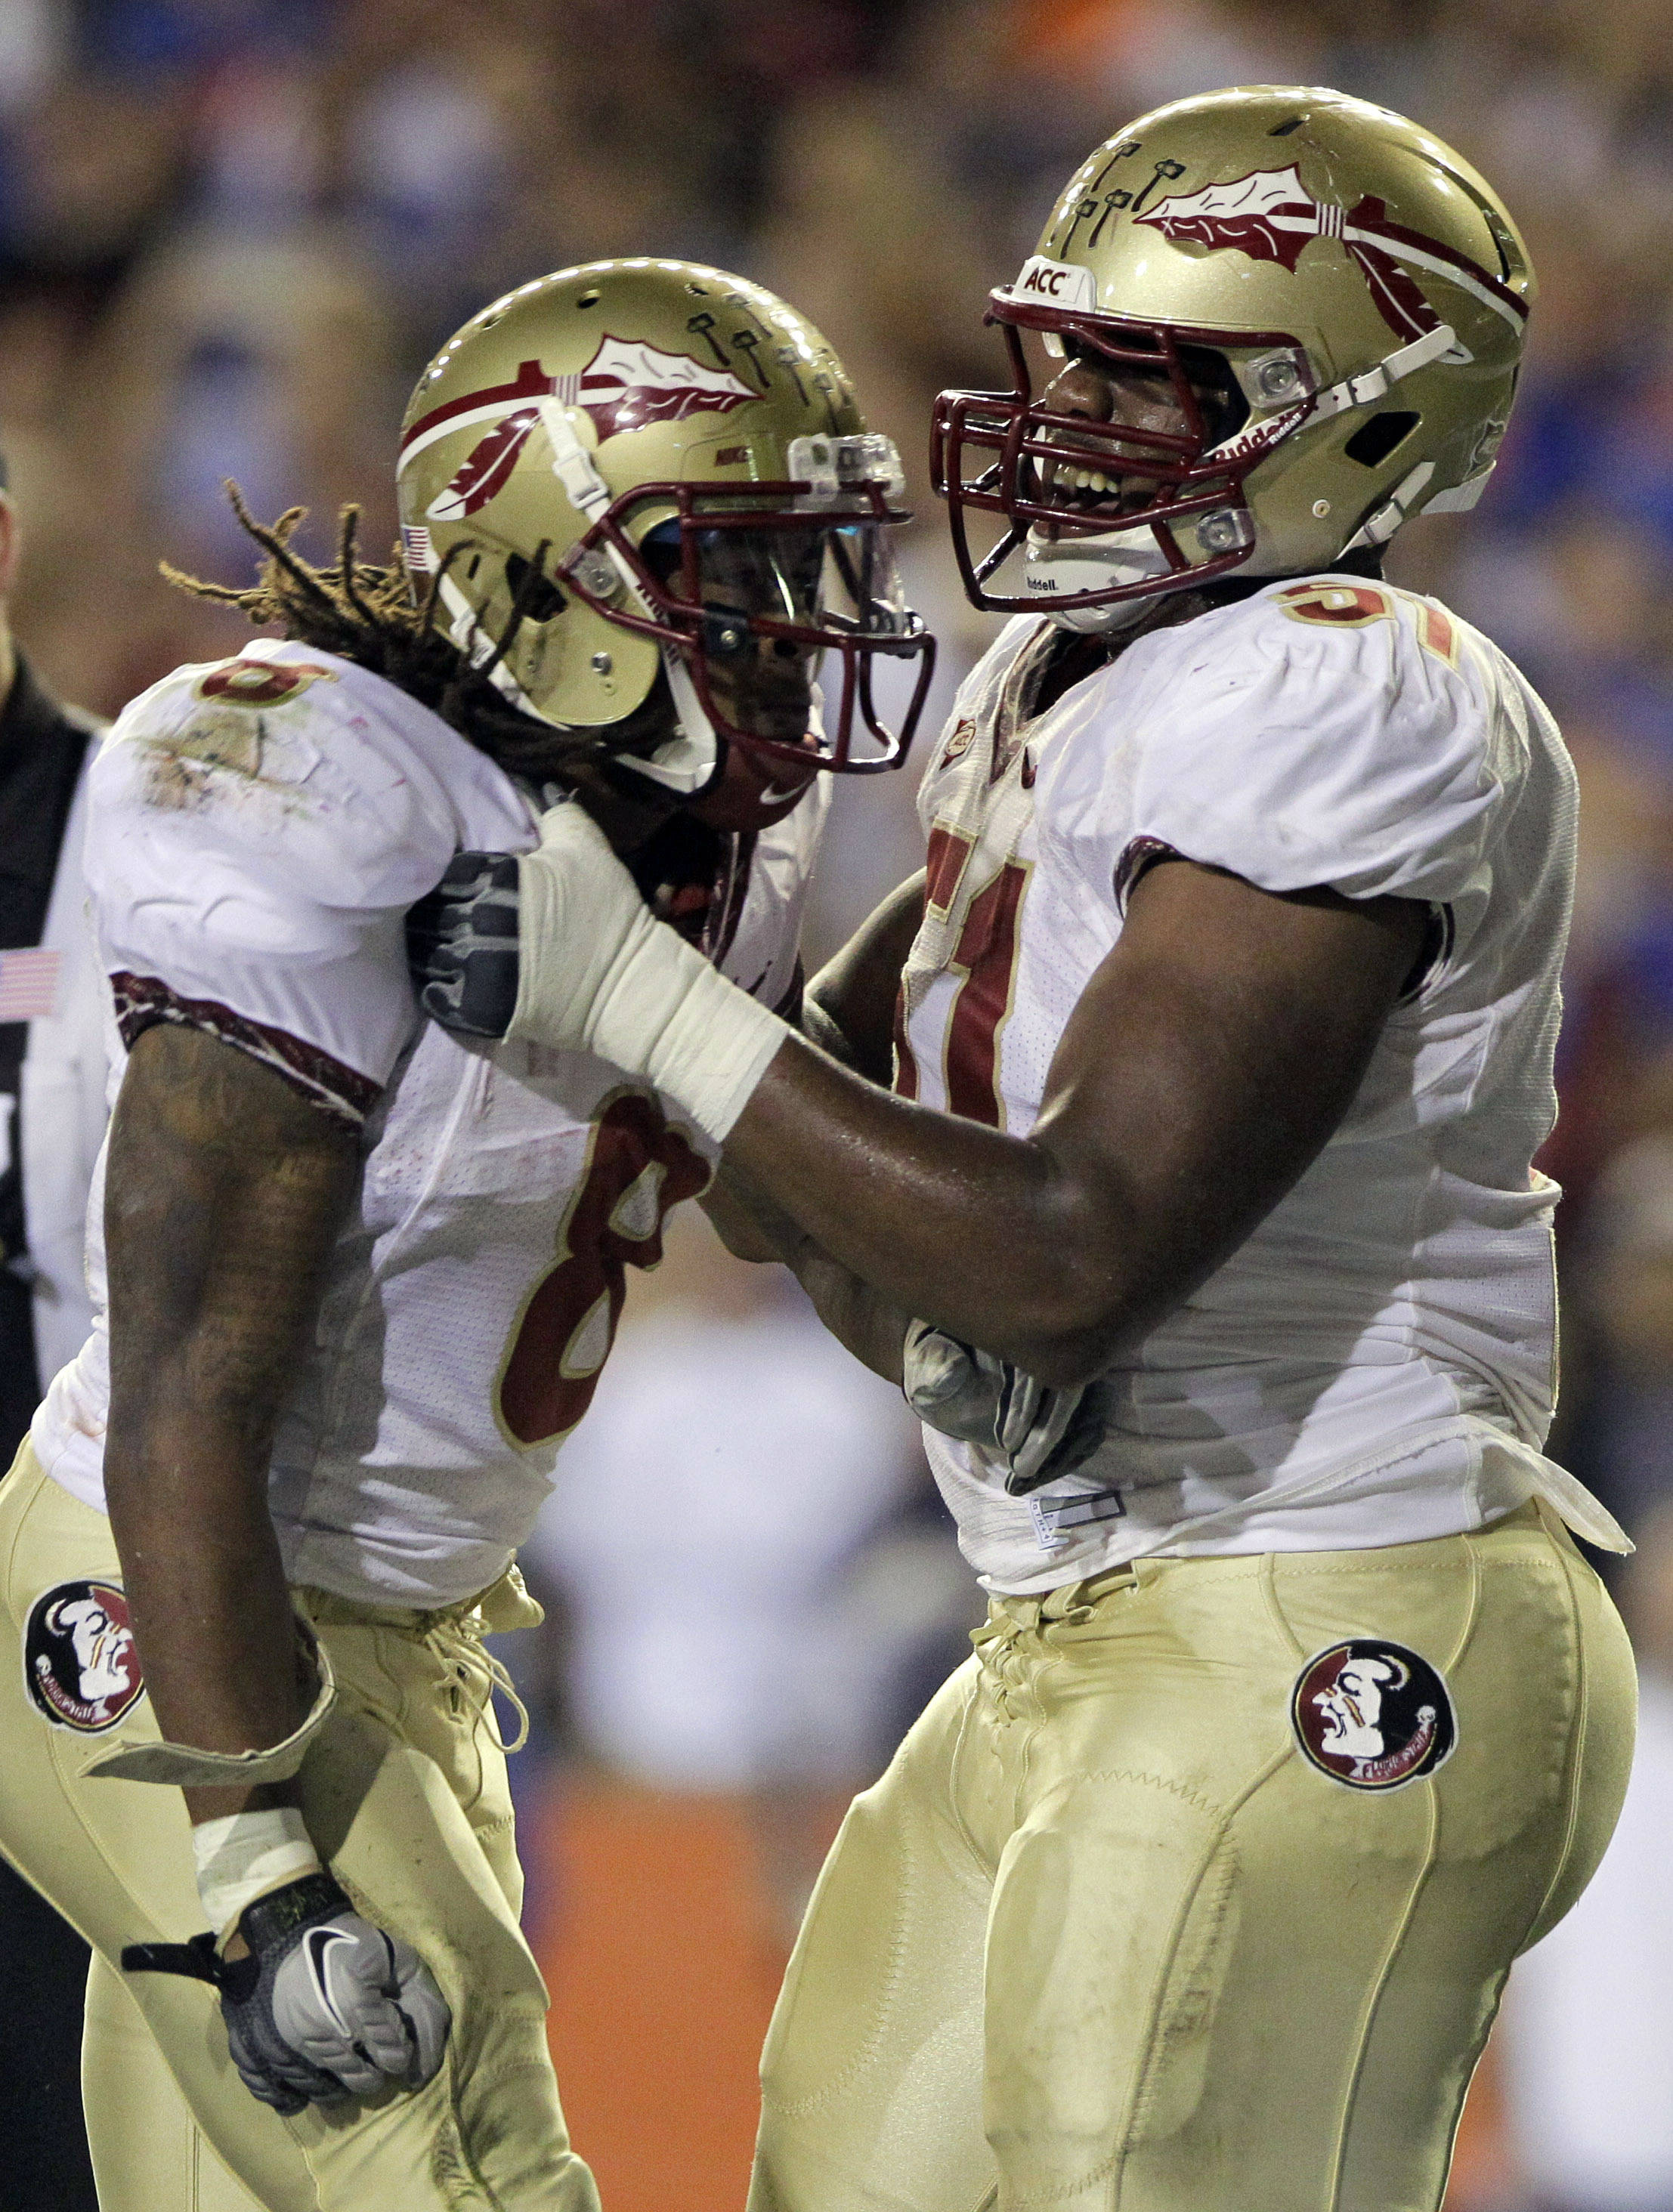 Florida State running back Devonta Freeman, left, celebrates with teammate offensive linesman Bobby Hart after a one-yard touchdown run against Florida during the first half of an NCAA college football game on Saturday, Nov. 26, 2011, in Gainesville, Fla. (AP Photo/John Raoux)